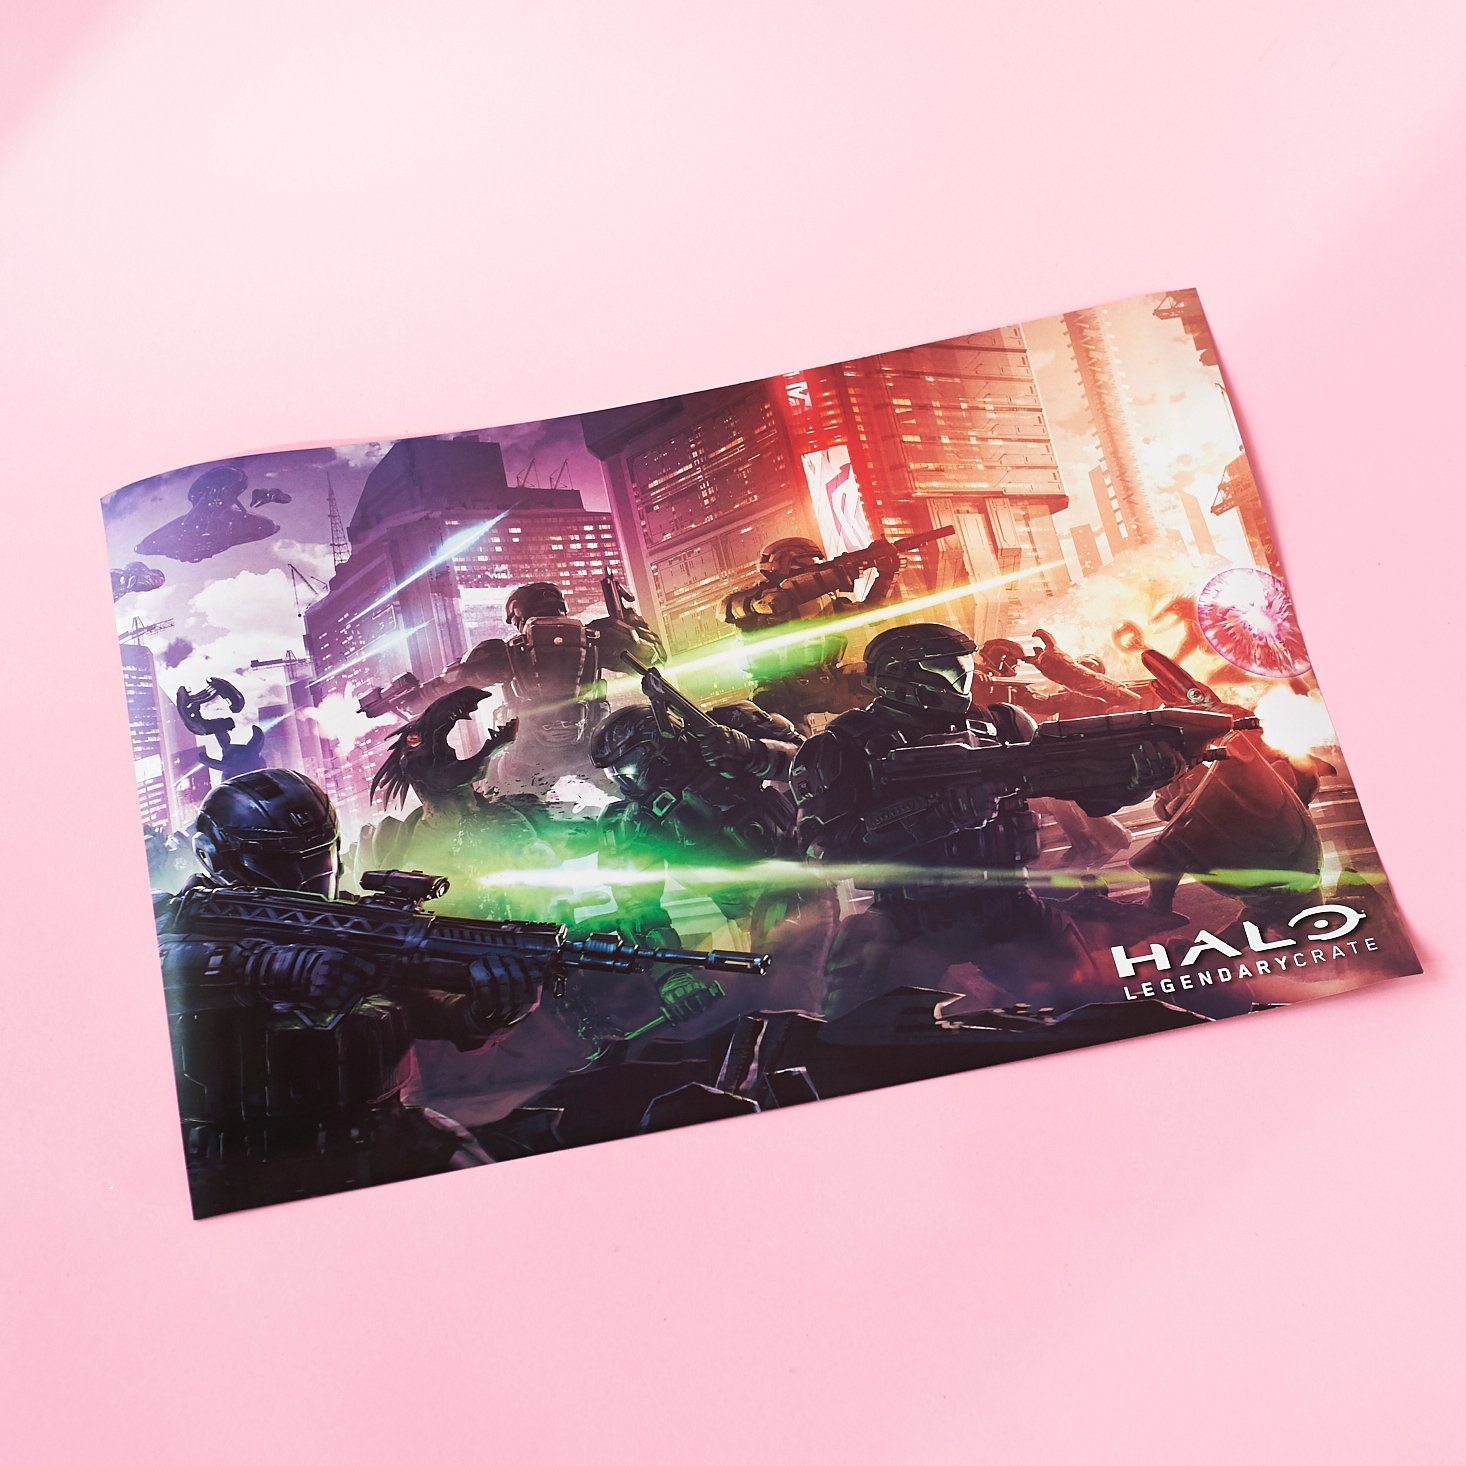 halo-legendary-crate-loot-crate-2016-0005